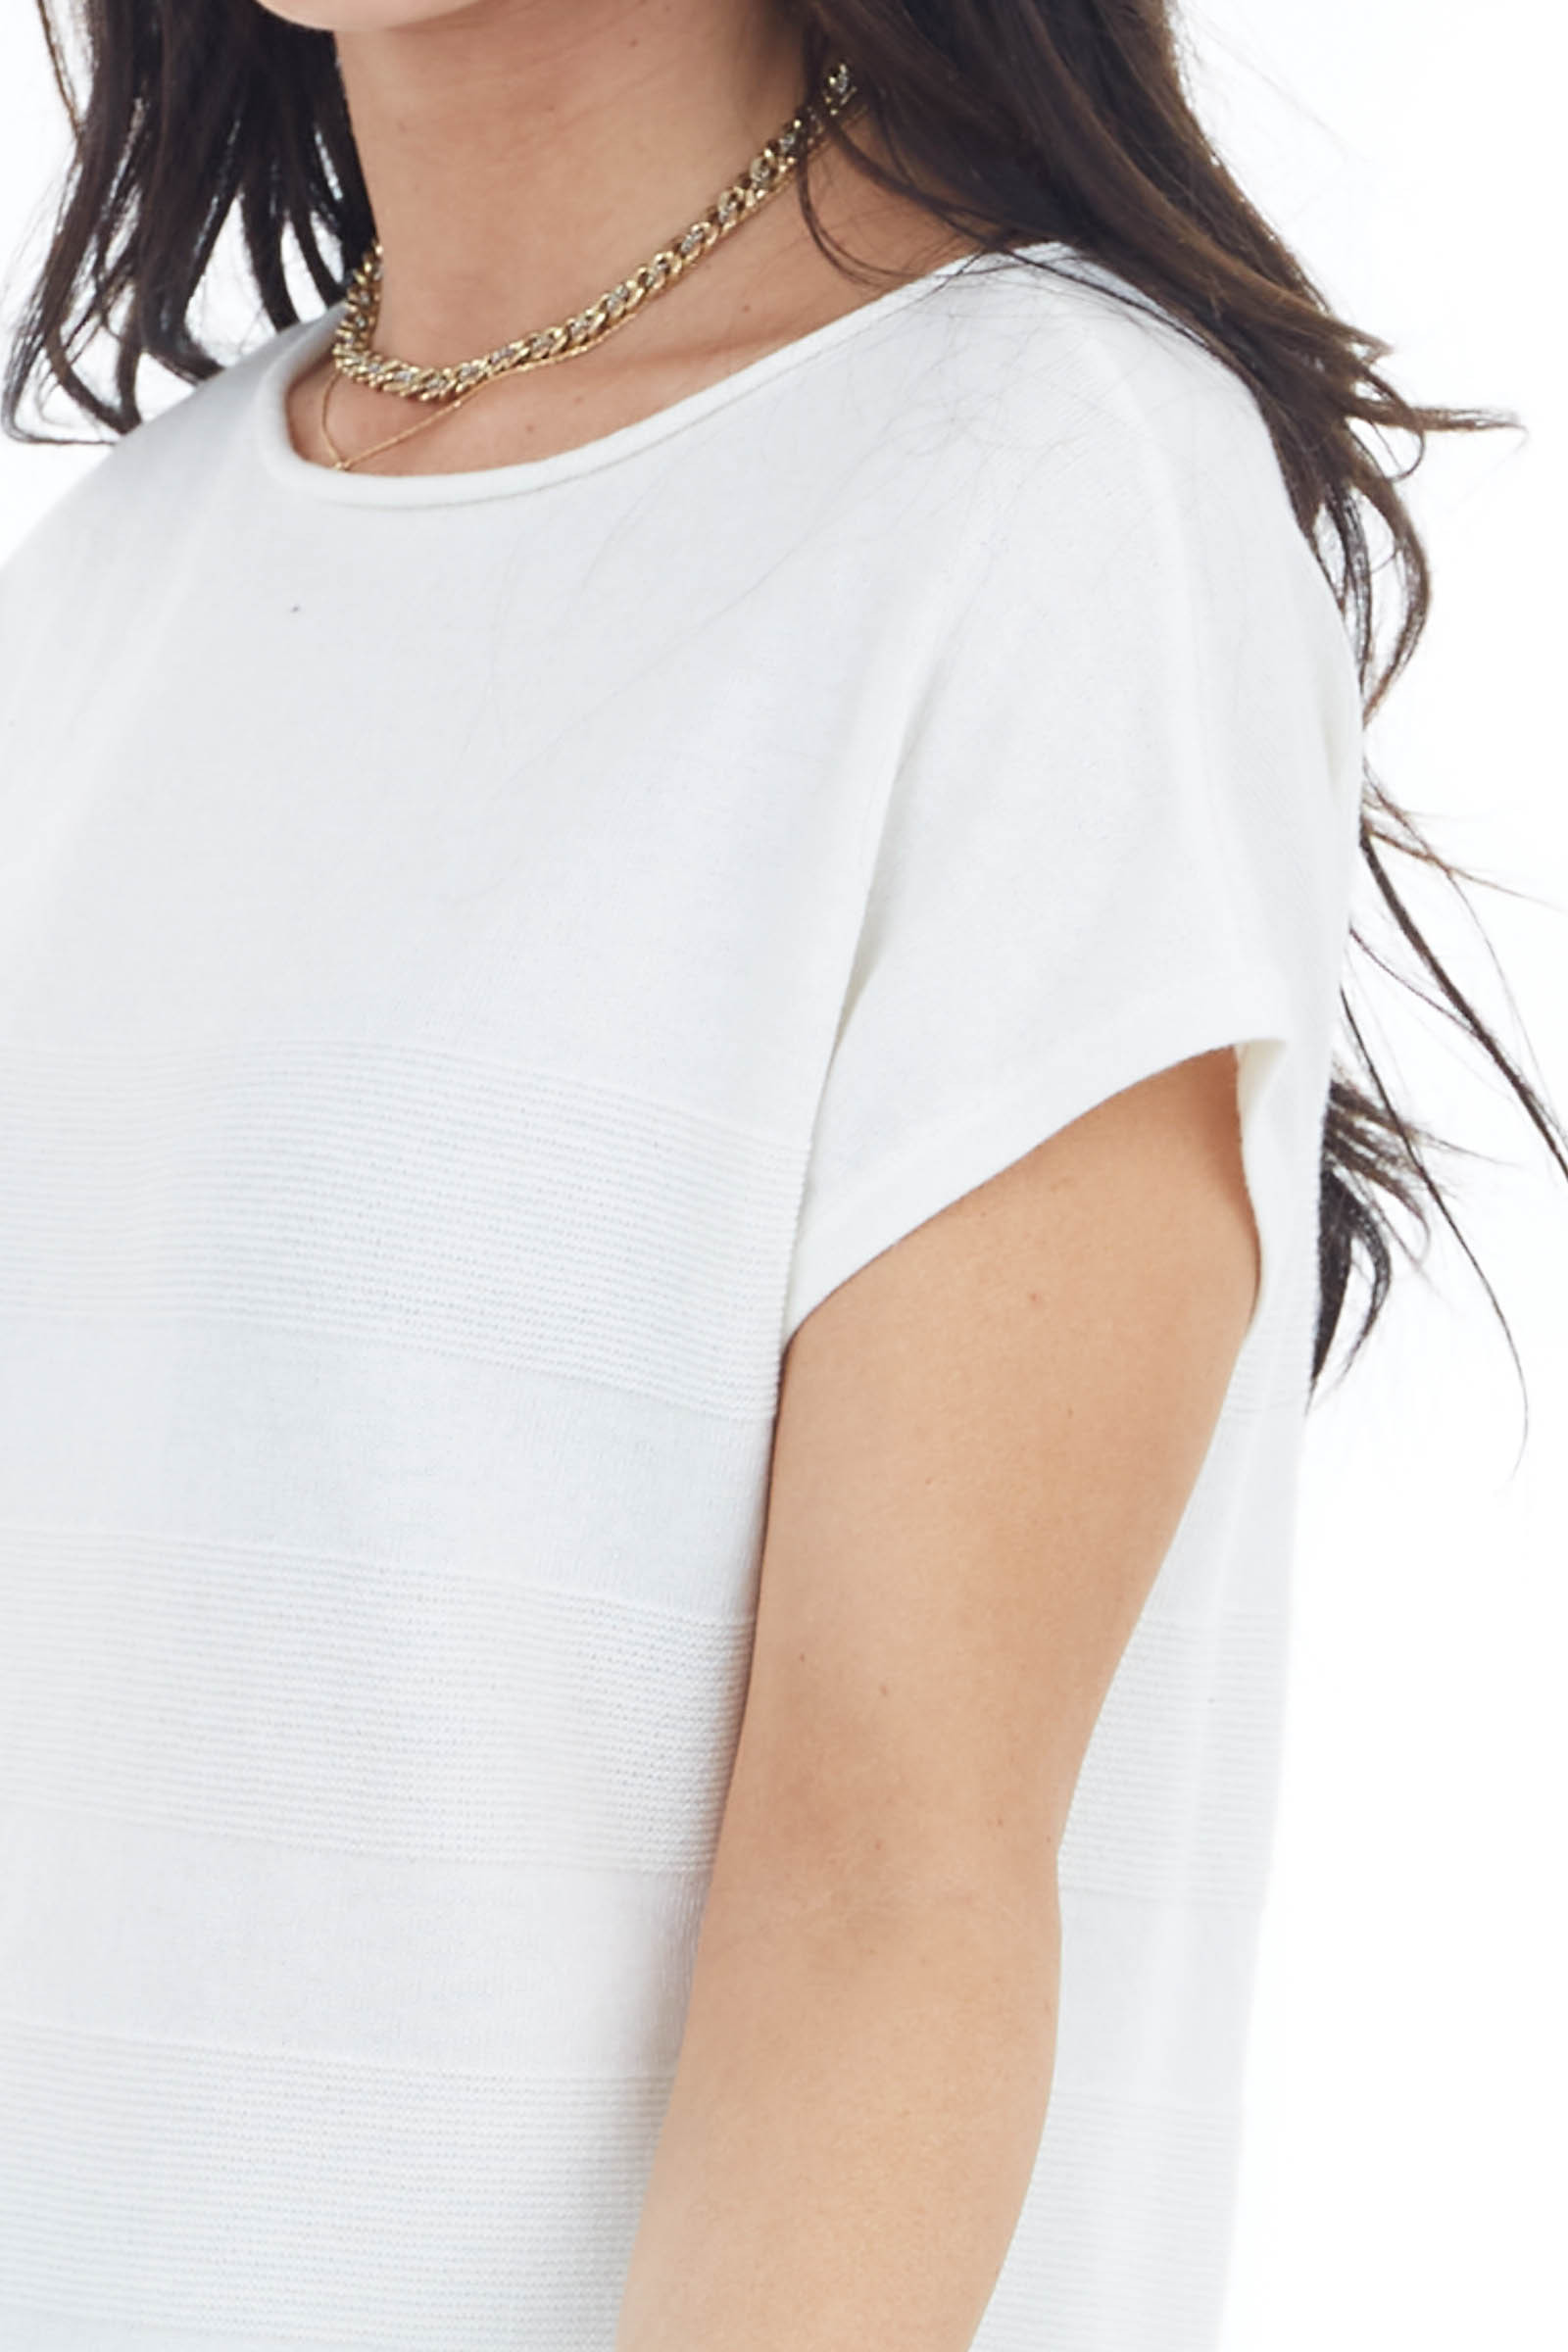 Ivory Textured Striped Stretchy Knit Top with Short Sleeves